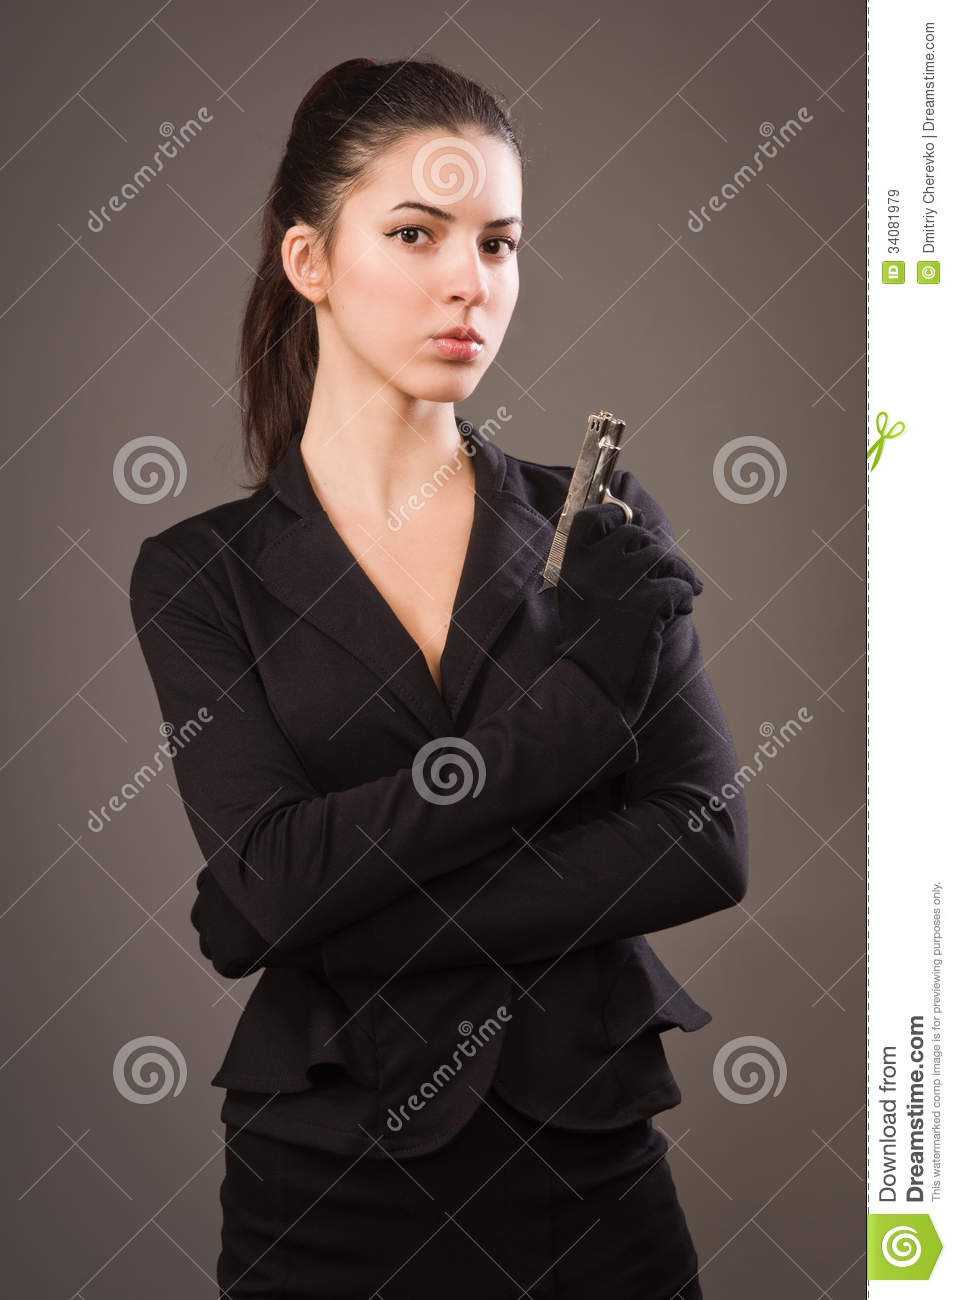 Spy Girl In A Black With Gun Royalty Free Stock Images - Image ...